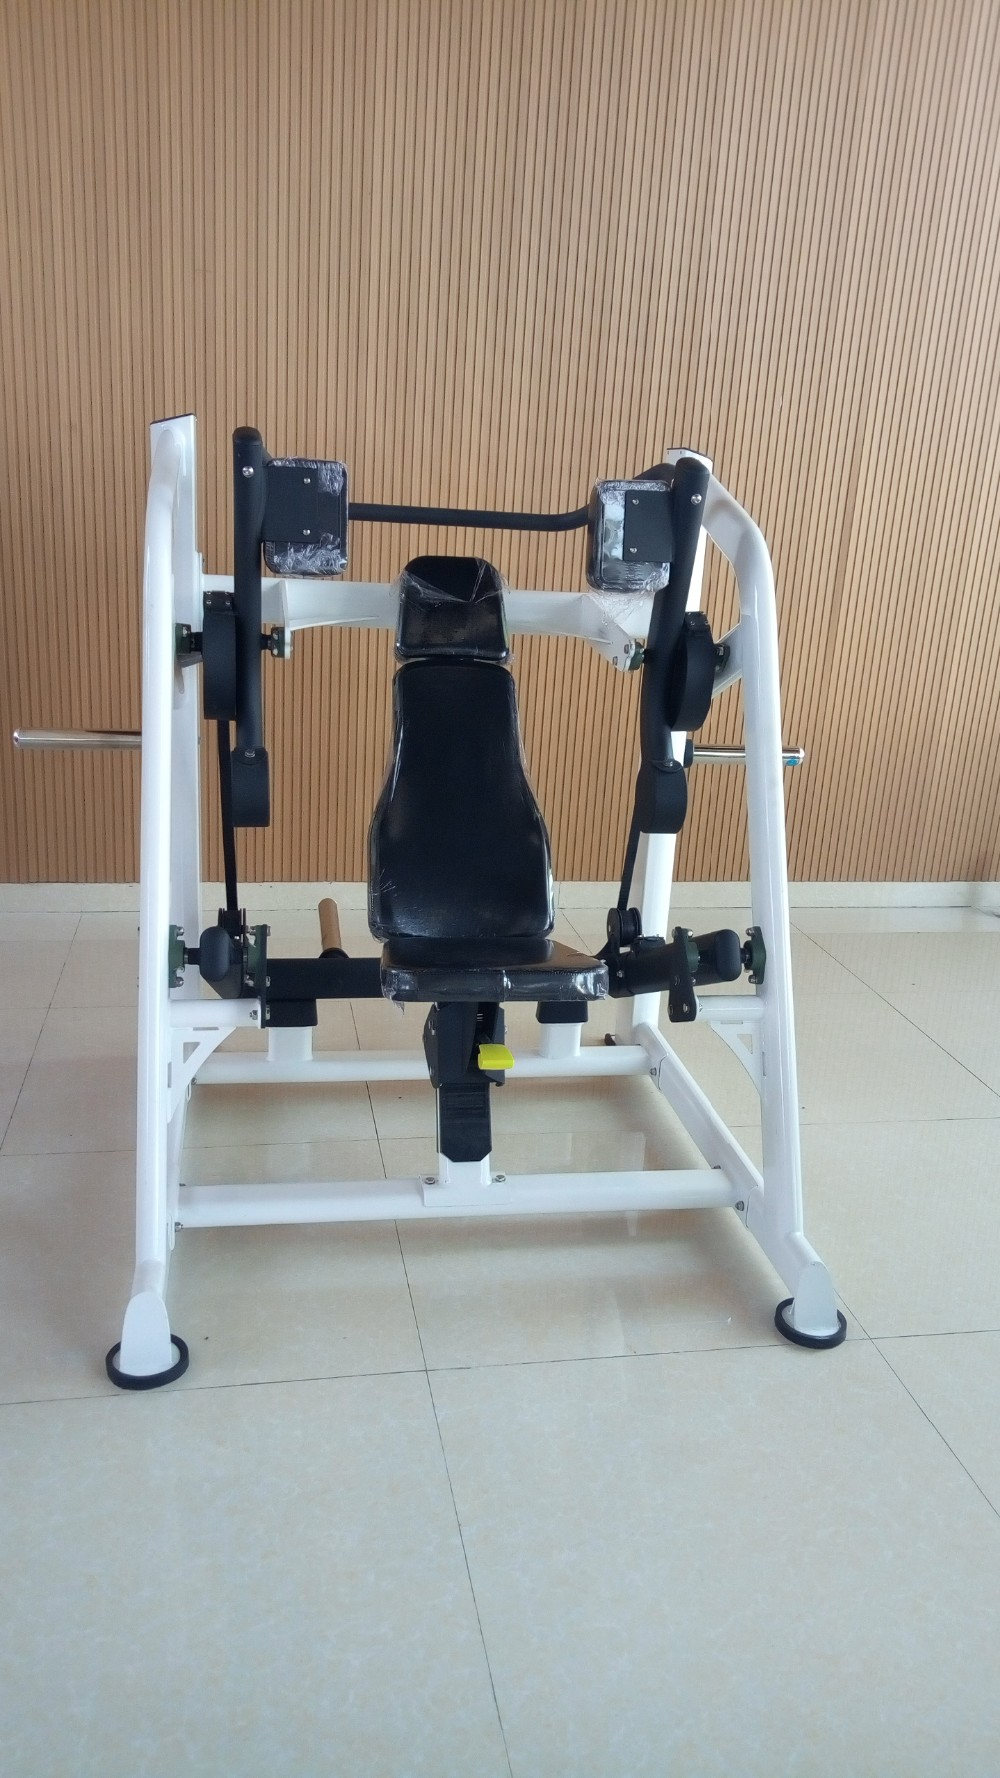 Pullover In Gym Asj M619 Pullover Machine Lower Price Of Gym Equipment Buy Commercial Gym Equipment Fitness Equipment Gym Machine Product On Alibaba